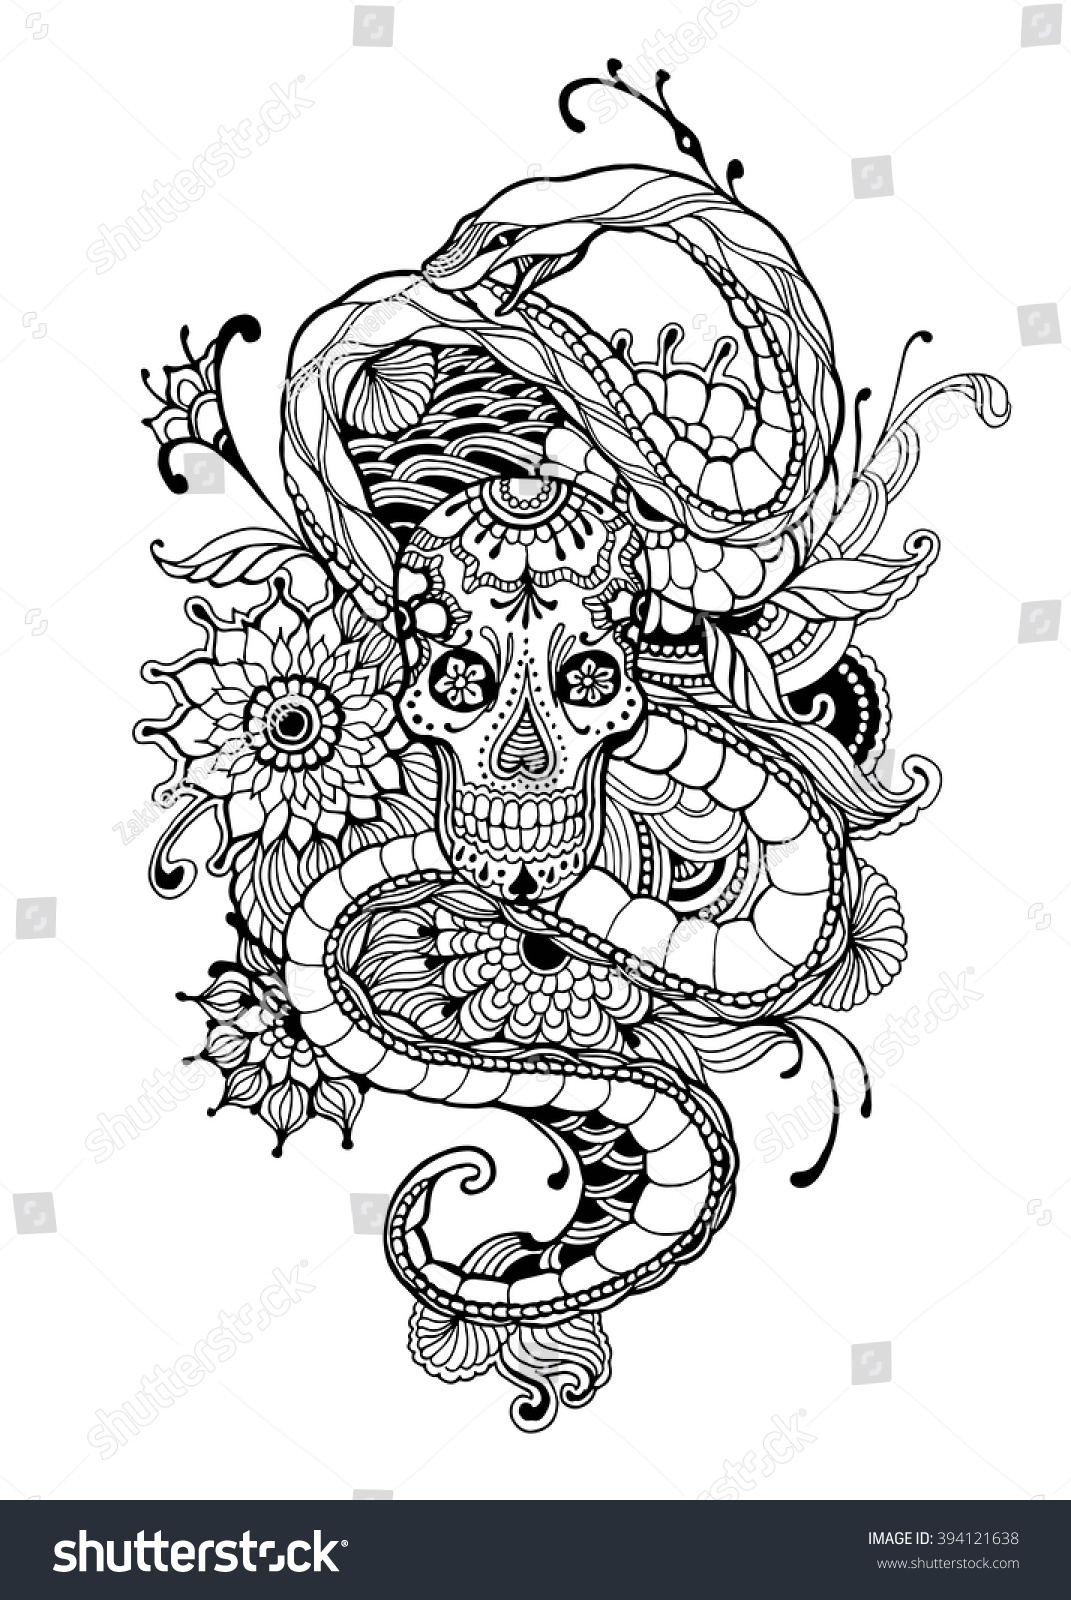 skull snake coloring page vector stock vector 394121638